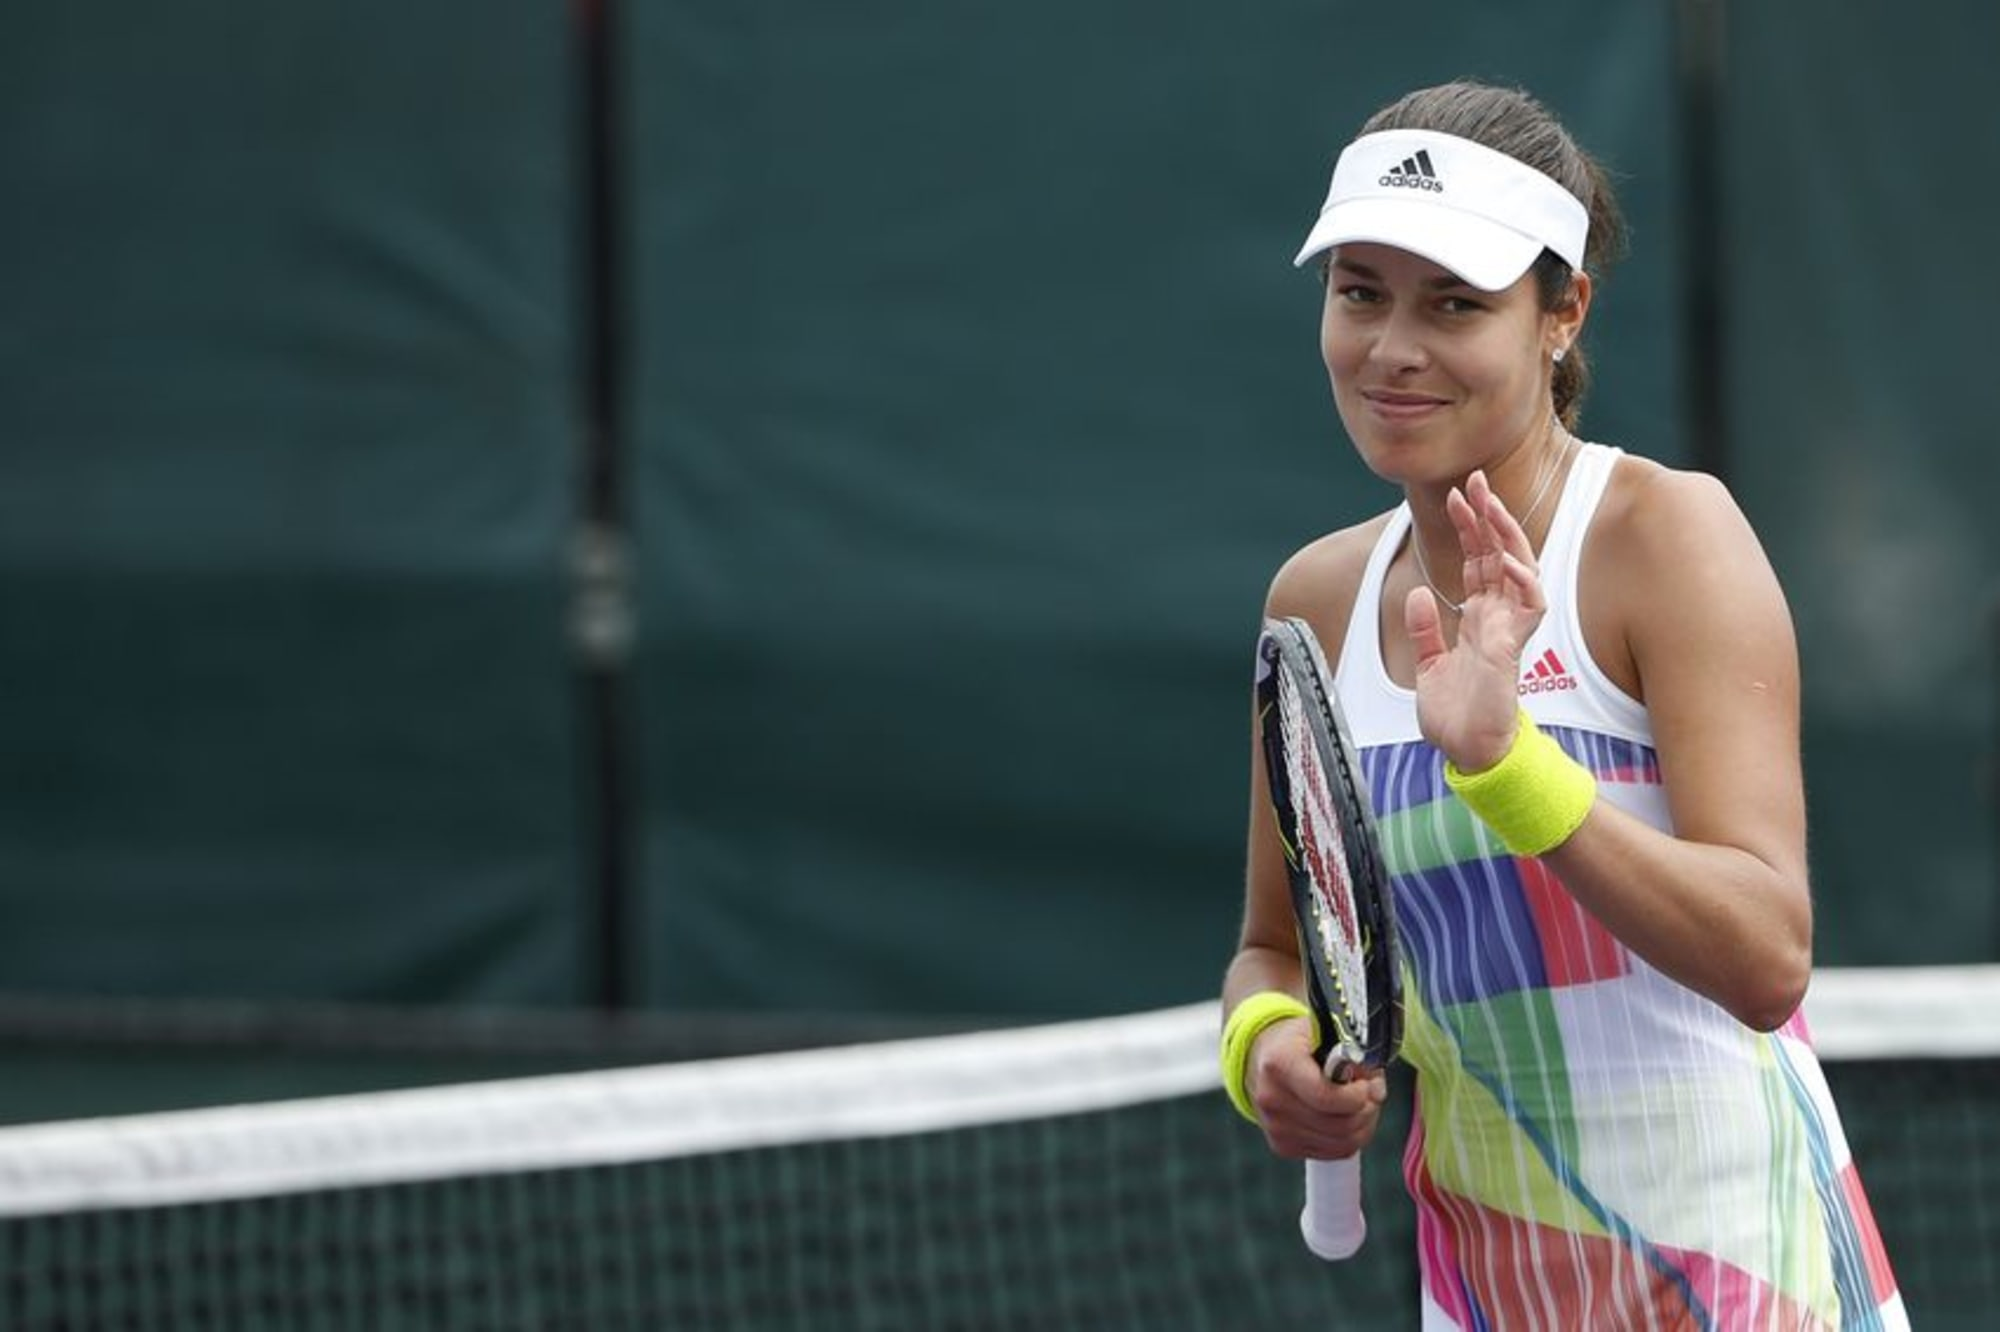 Ana Ivanovic Announces Her Retirement From Tennis At Age 29